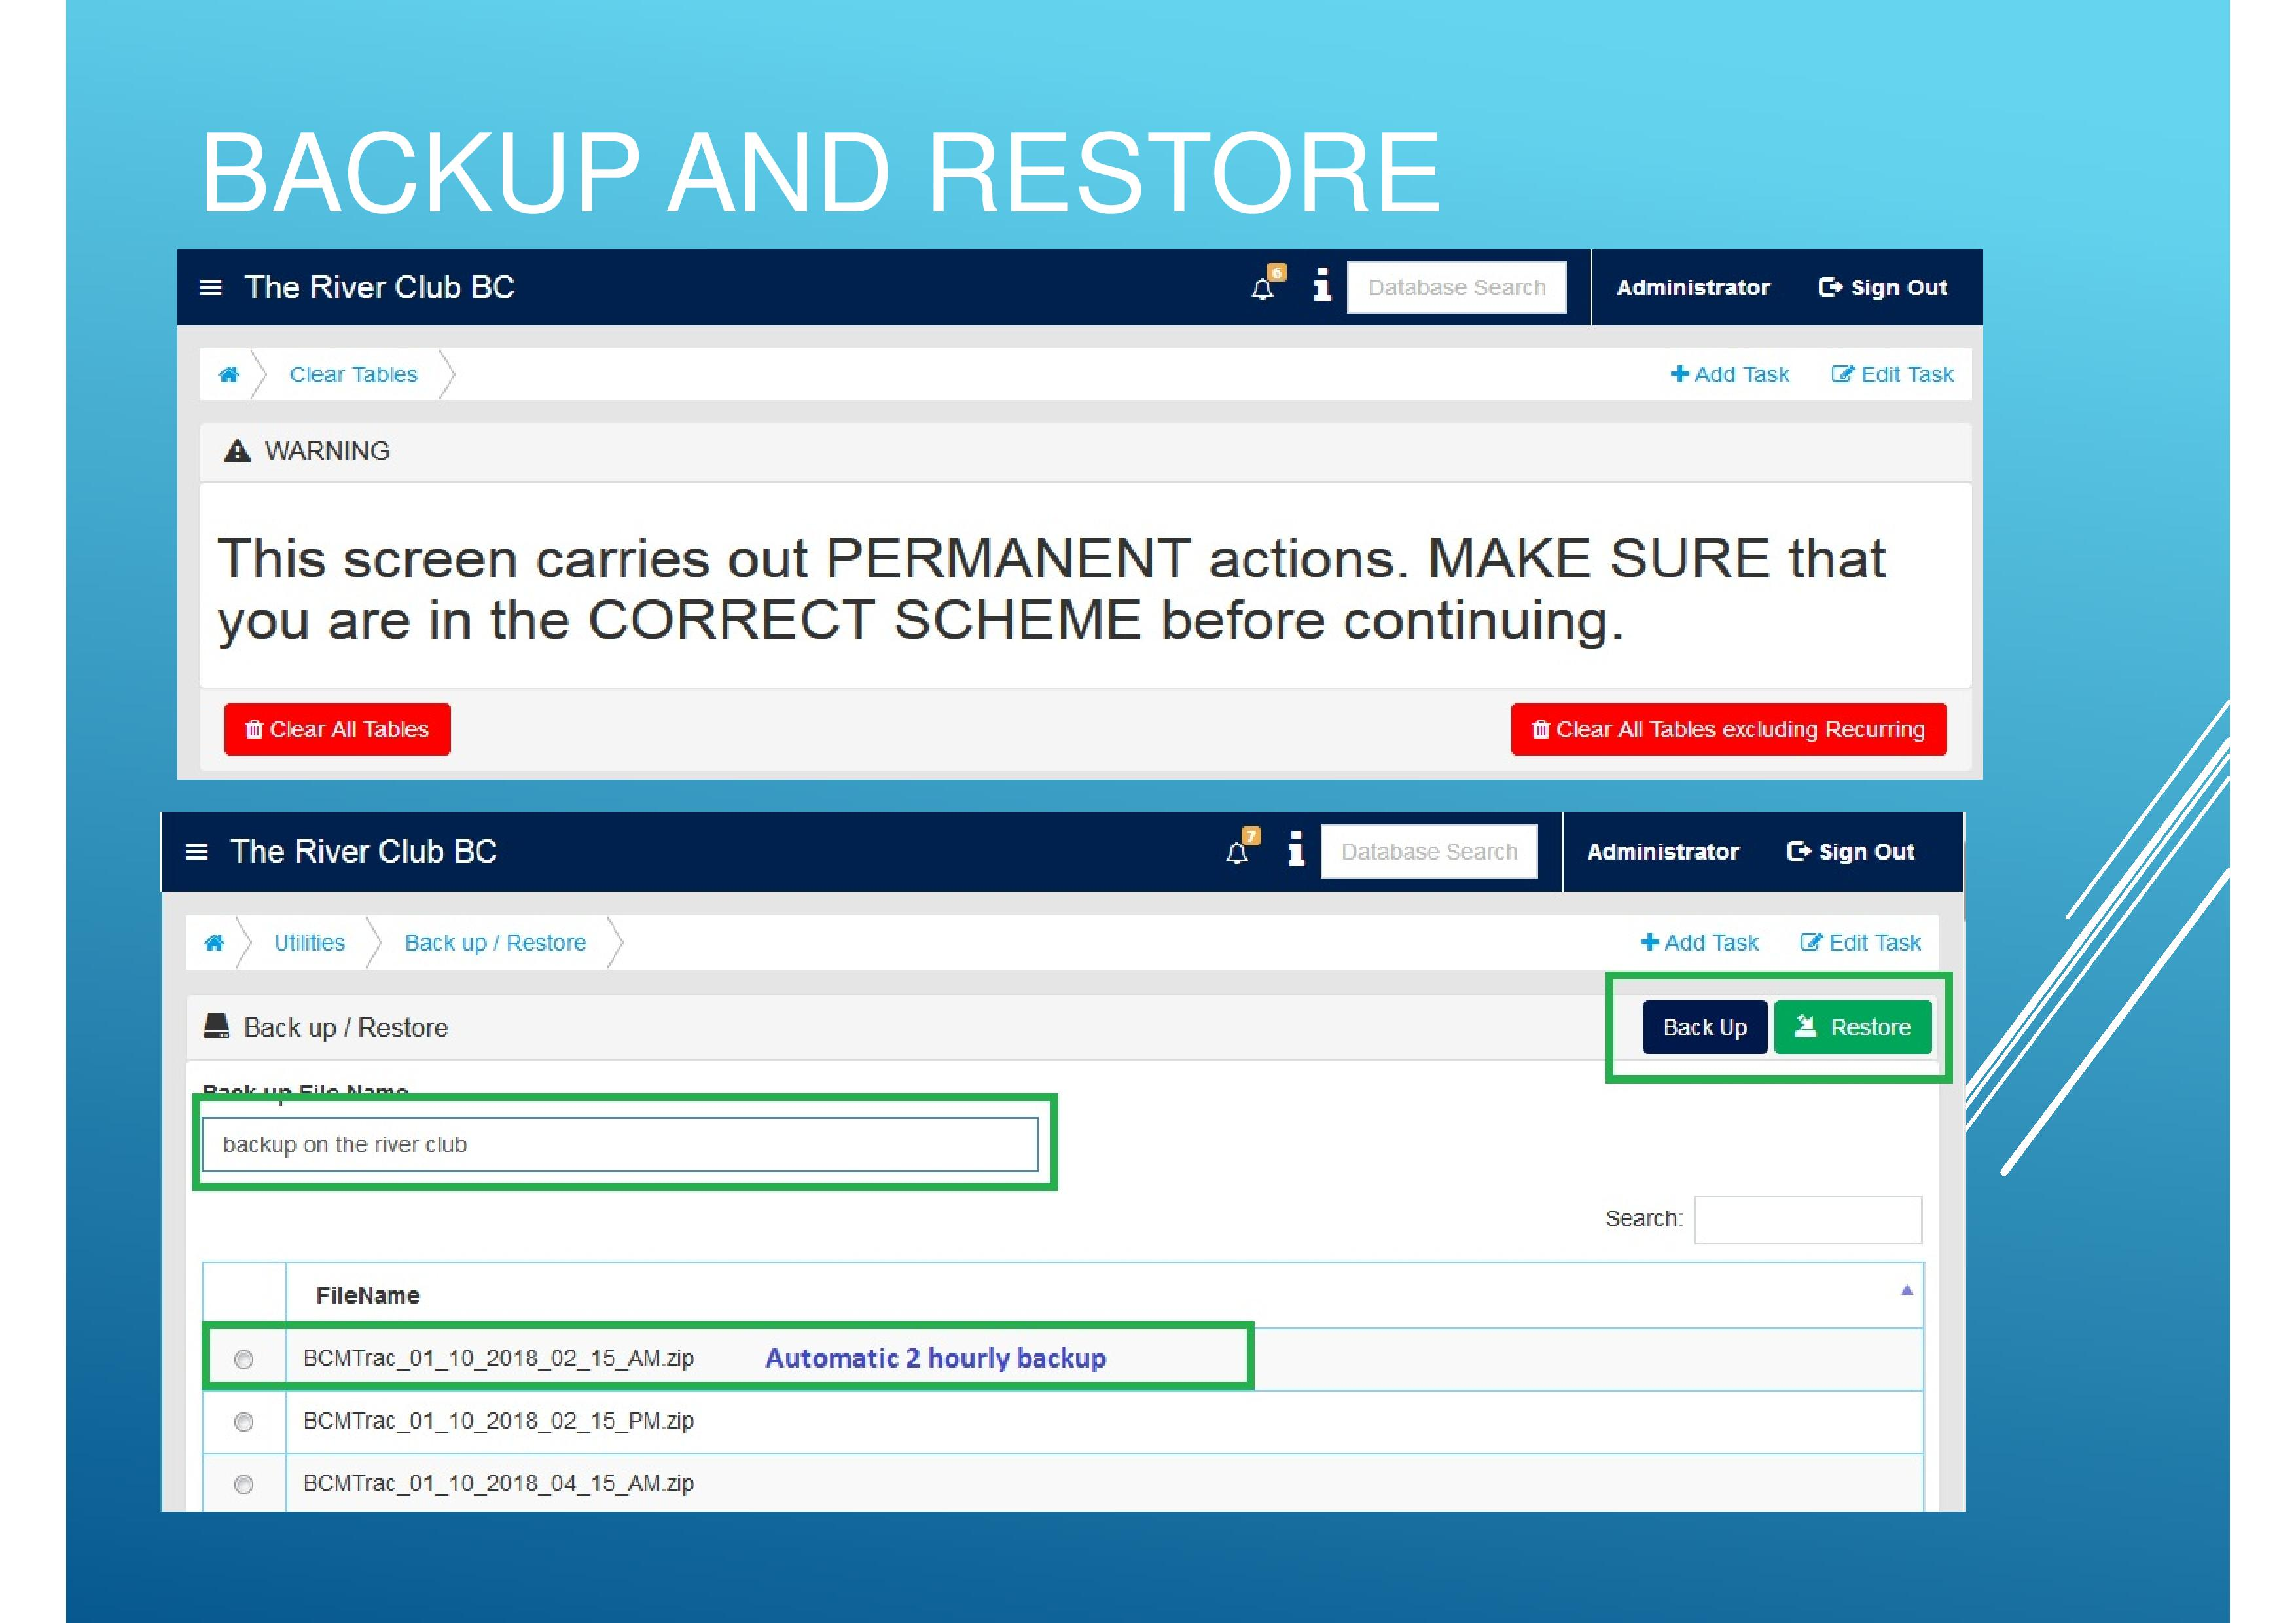 Users are able to Backup and Restore important information